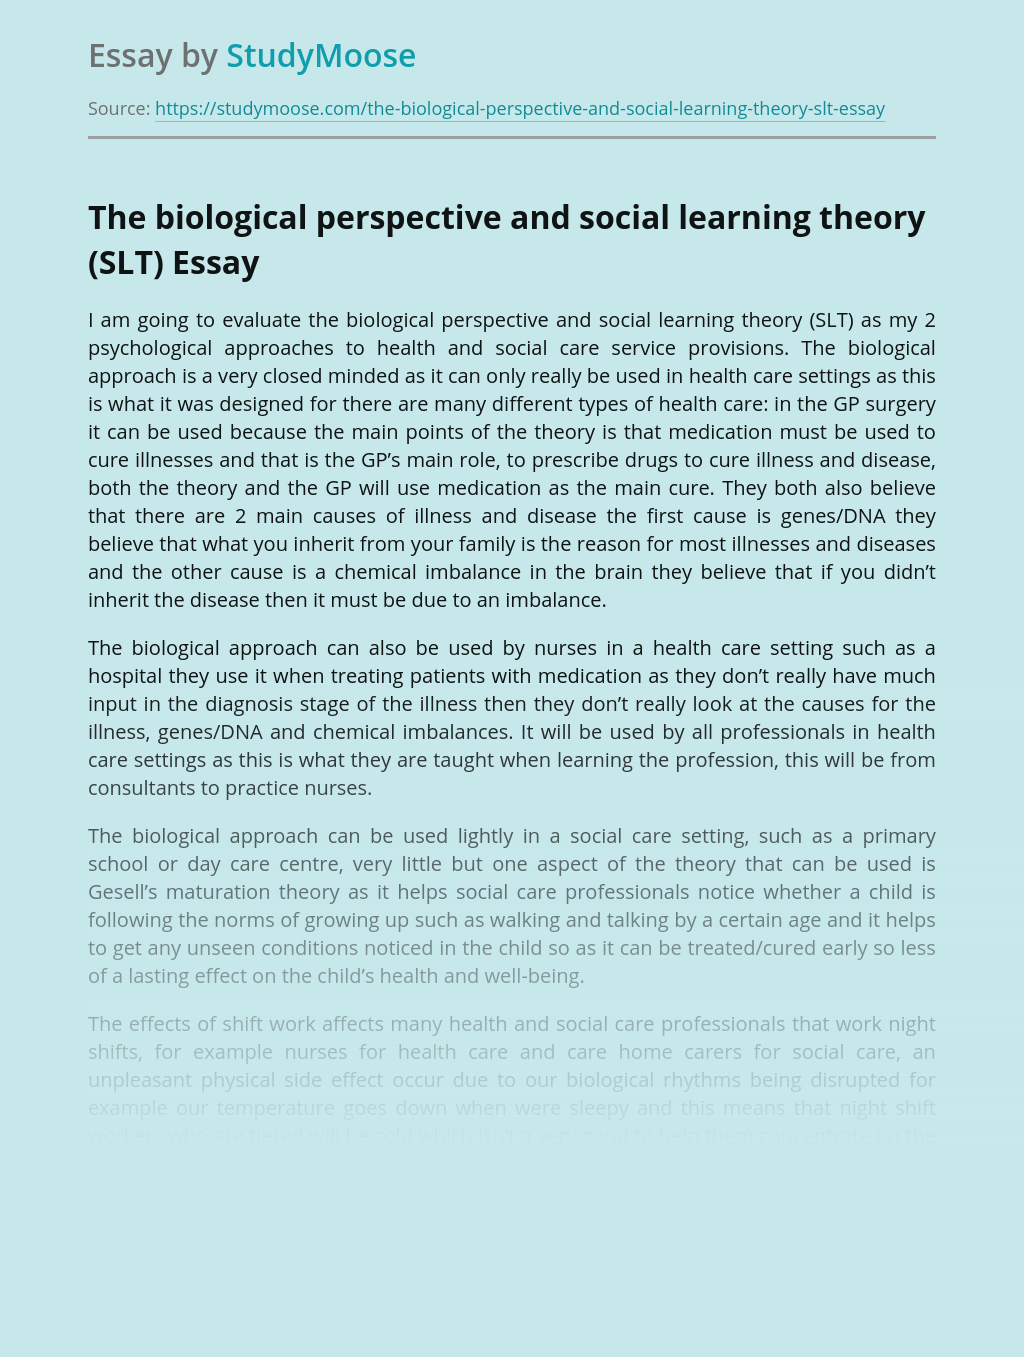 The biological perspective and social learning theory (SLT)